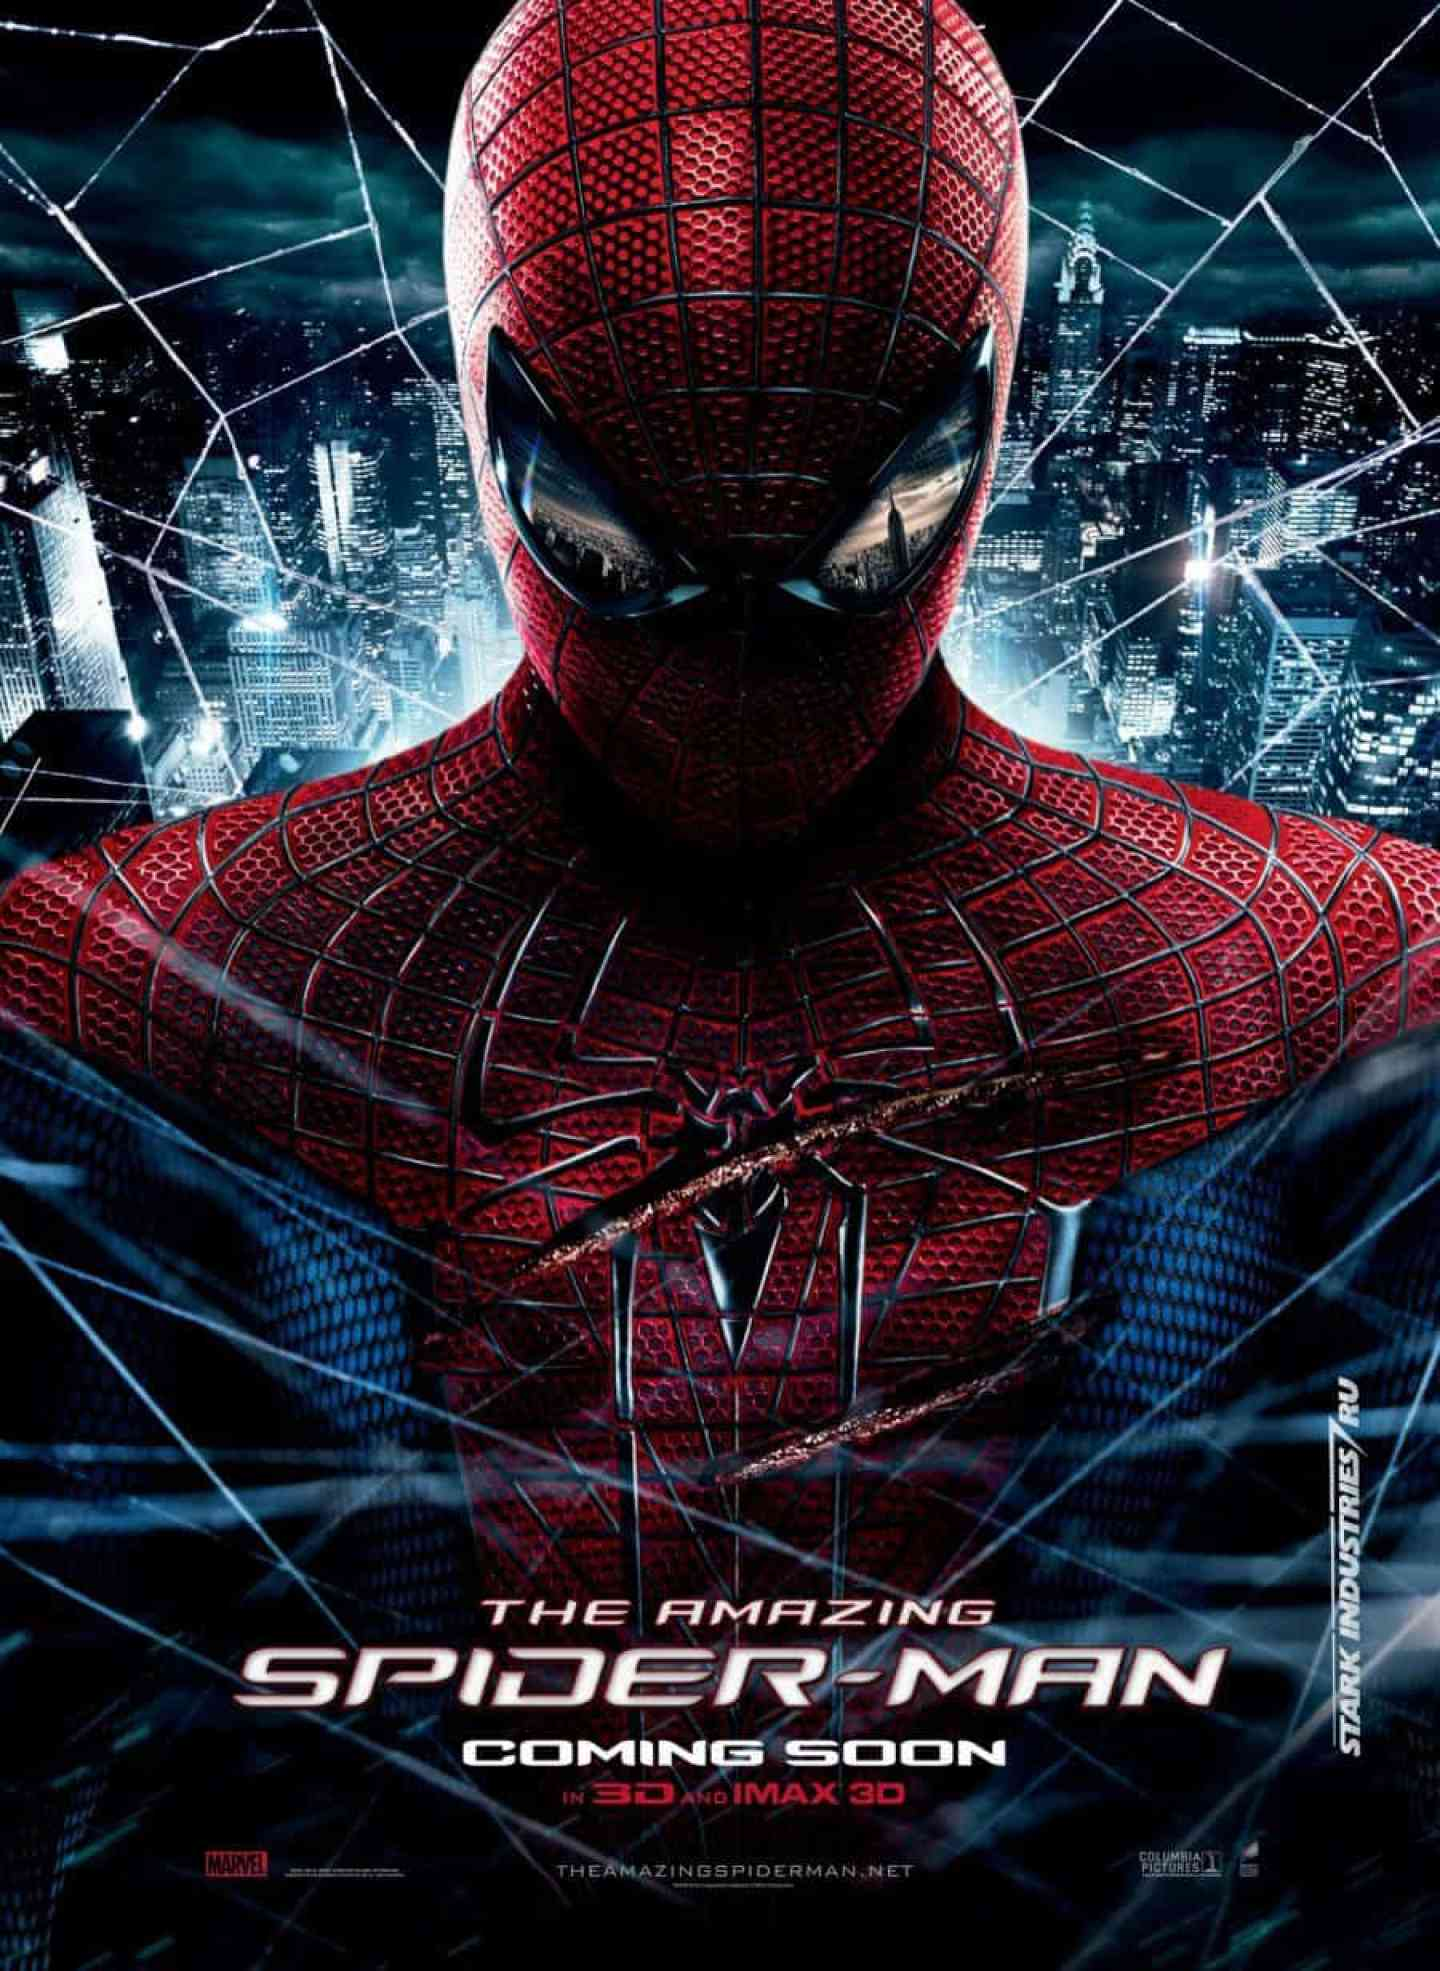 Film Review: The Amazing Spider-Man starring Andrew Garfield